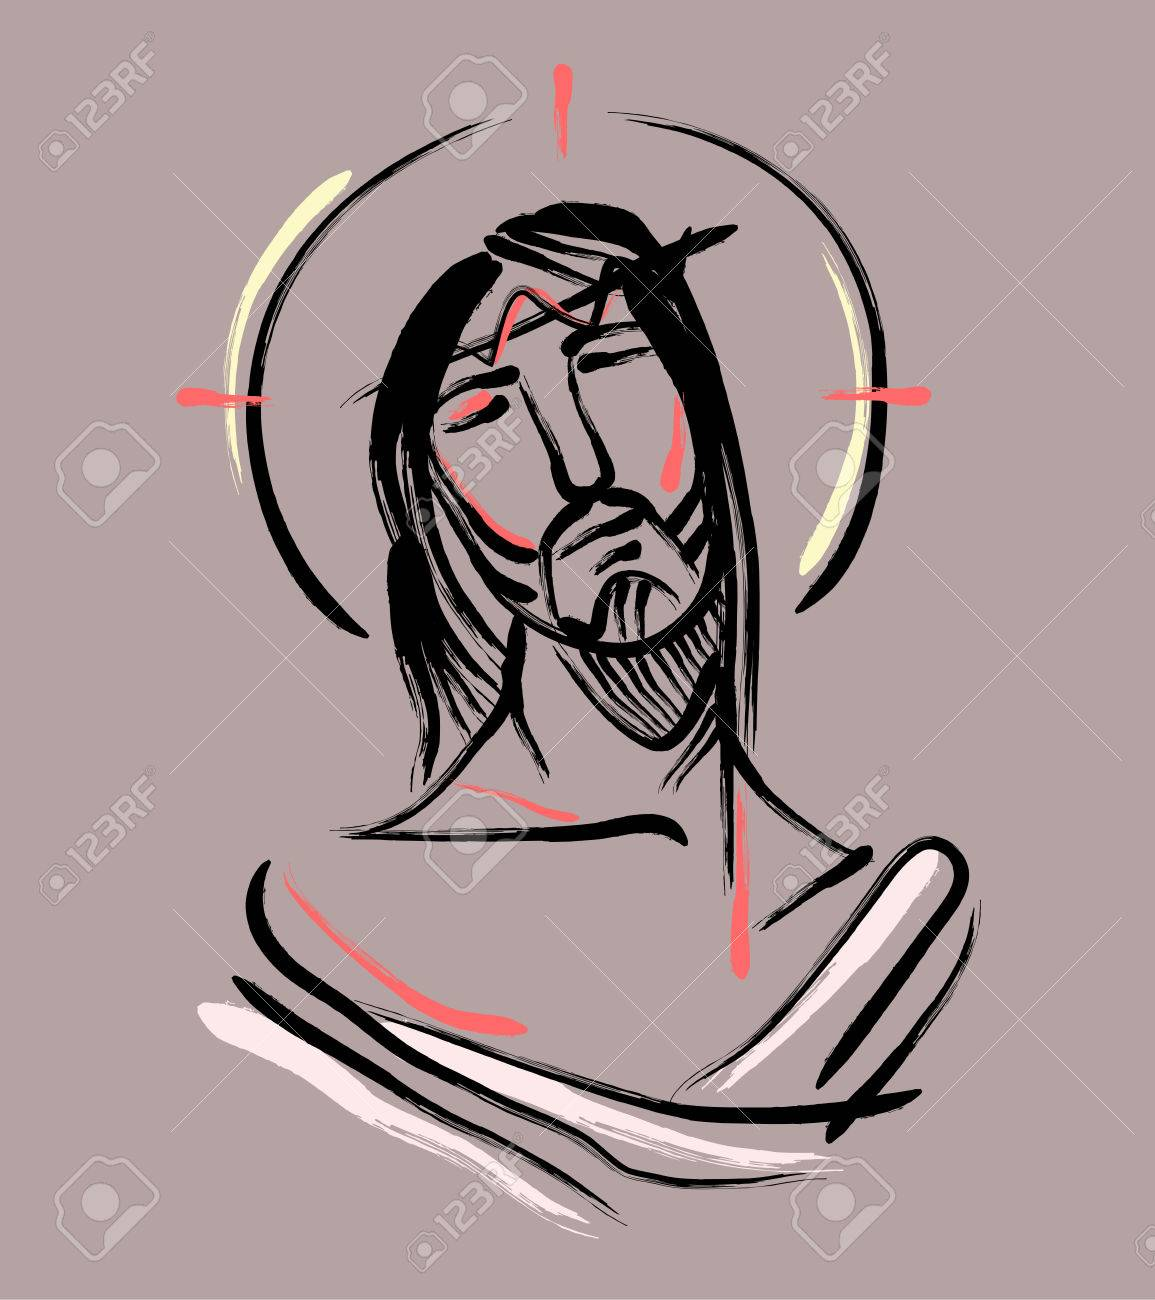 1155x1300 Jesus Face Stock Photos. Royalty Free Business Images